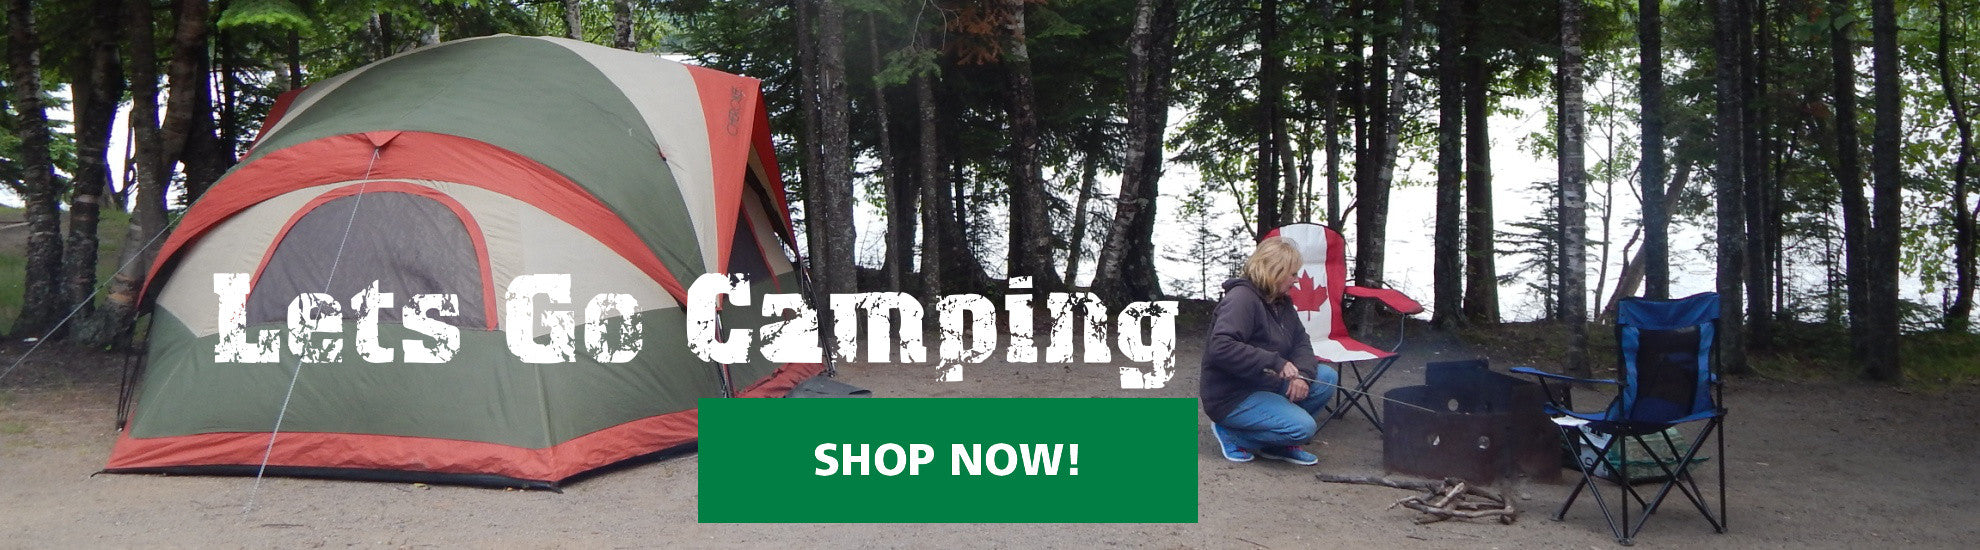 Go Camping Canada Camping Gear and Supplies